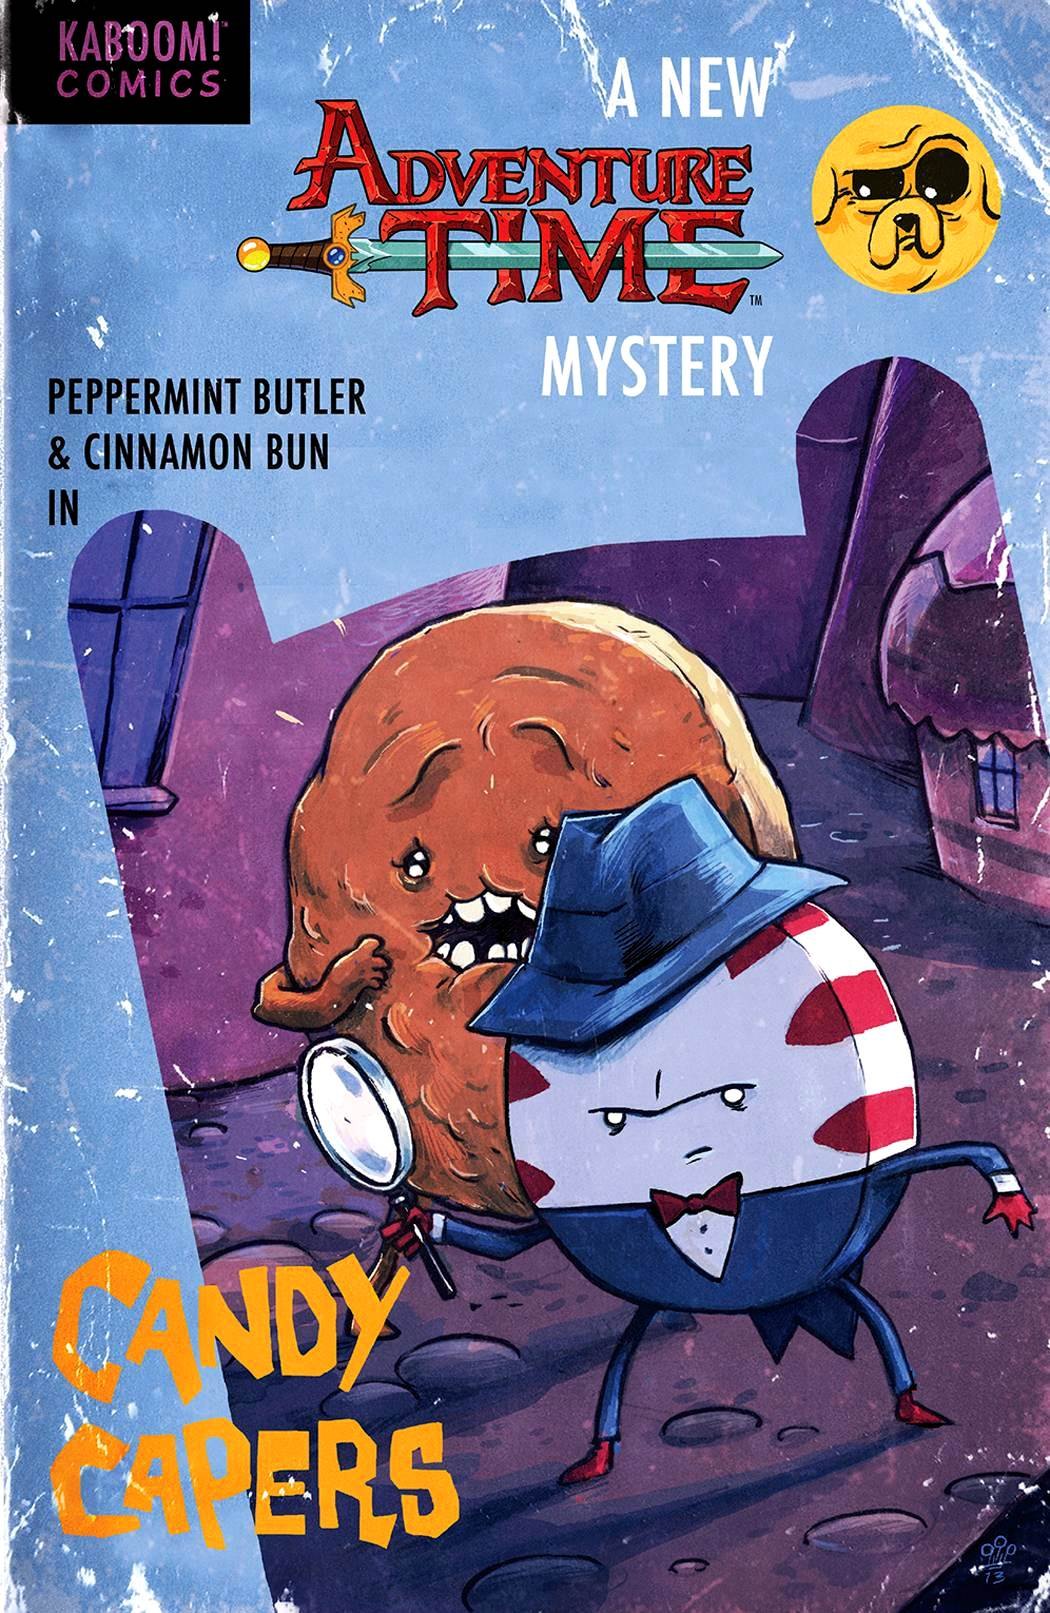 Adventure Time: Candy Capers Volume 1